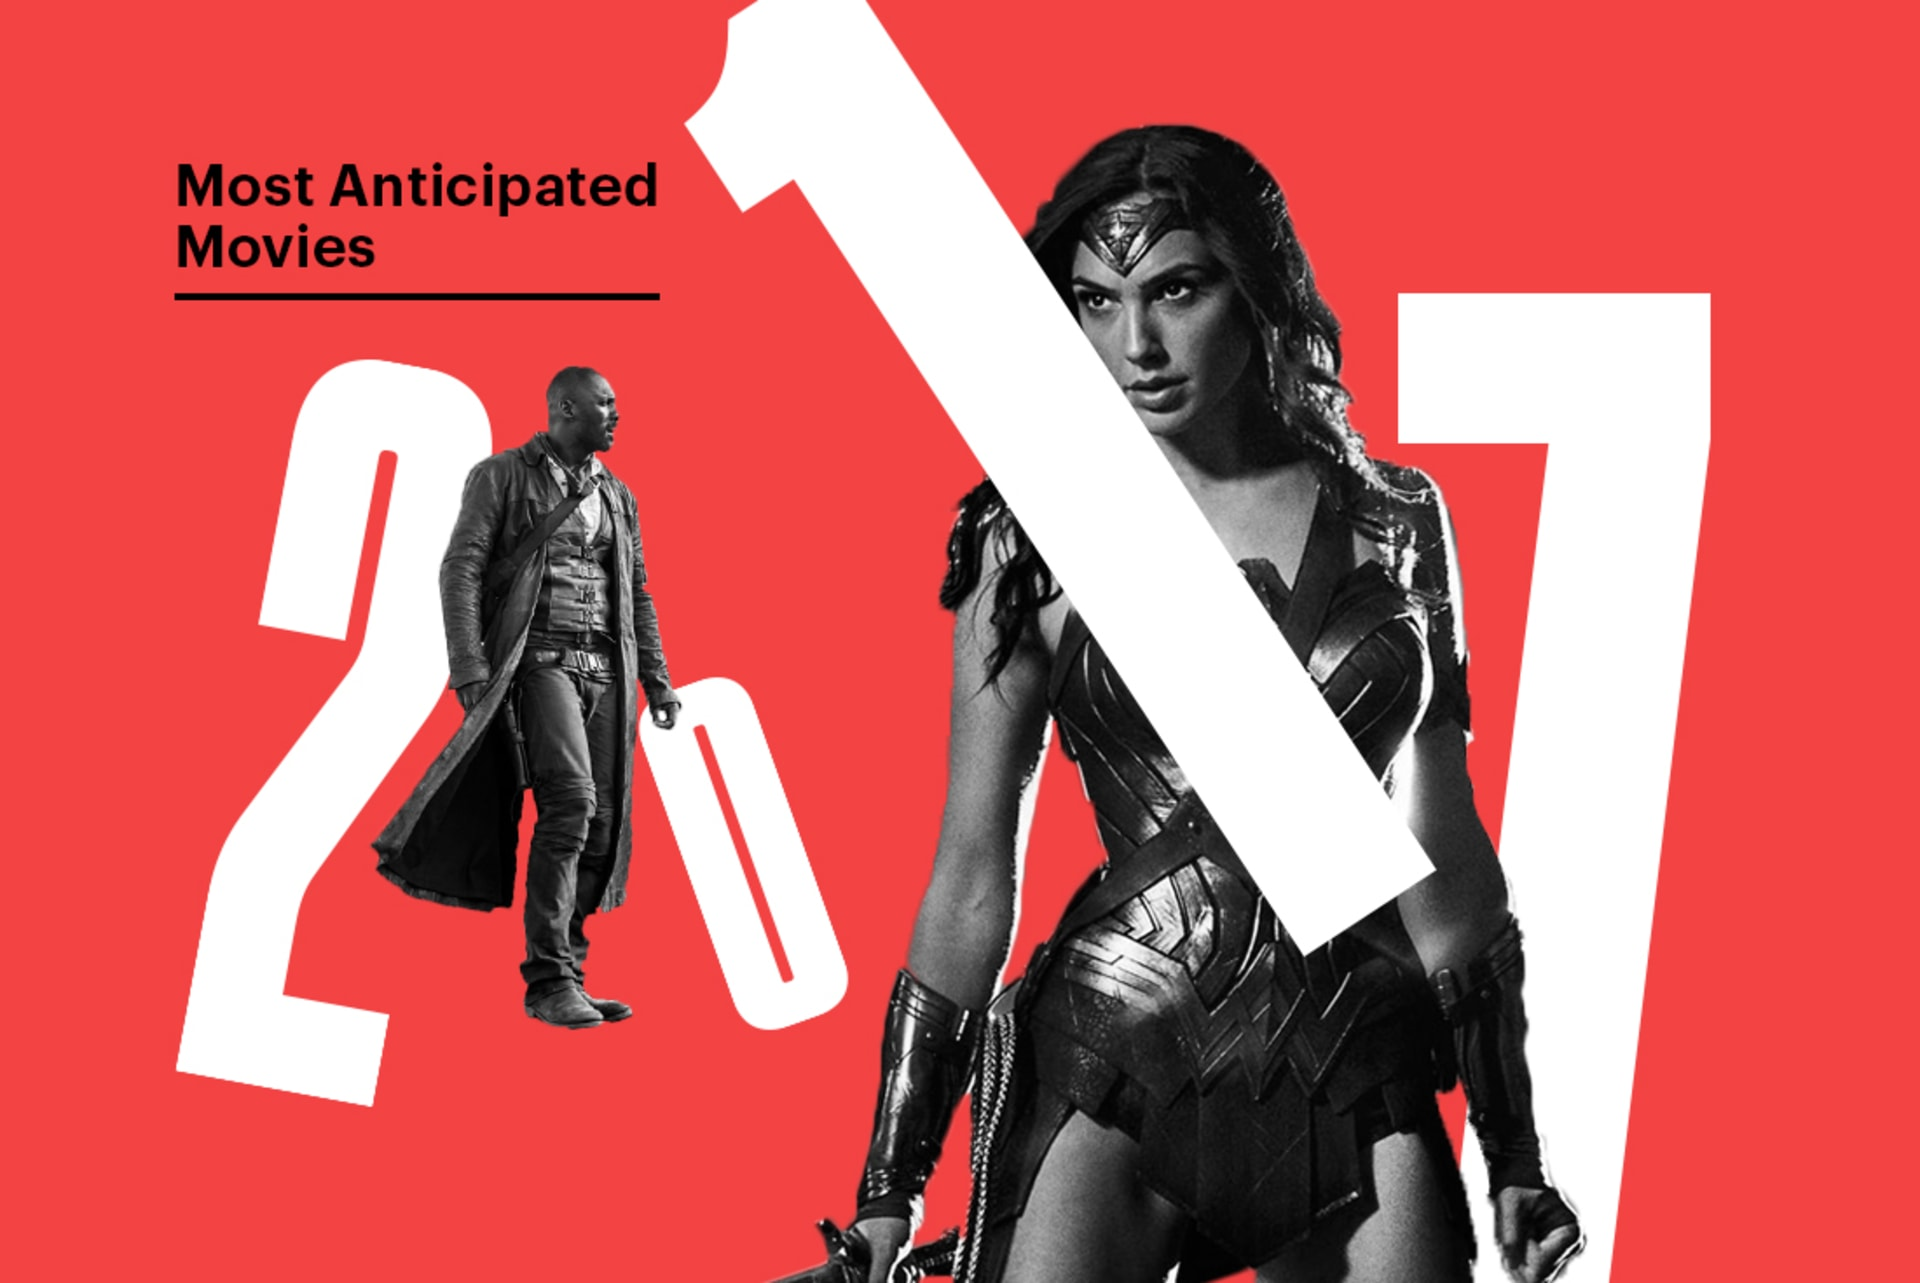 Most Anticipated Movies 2017